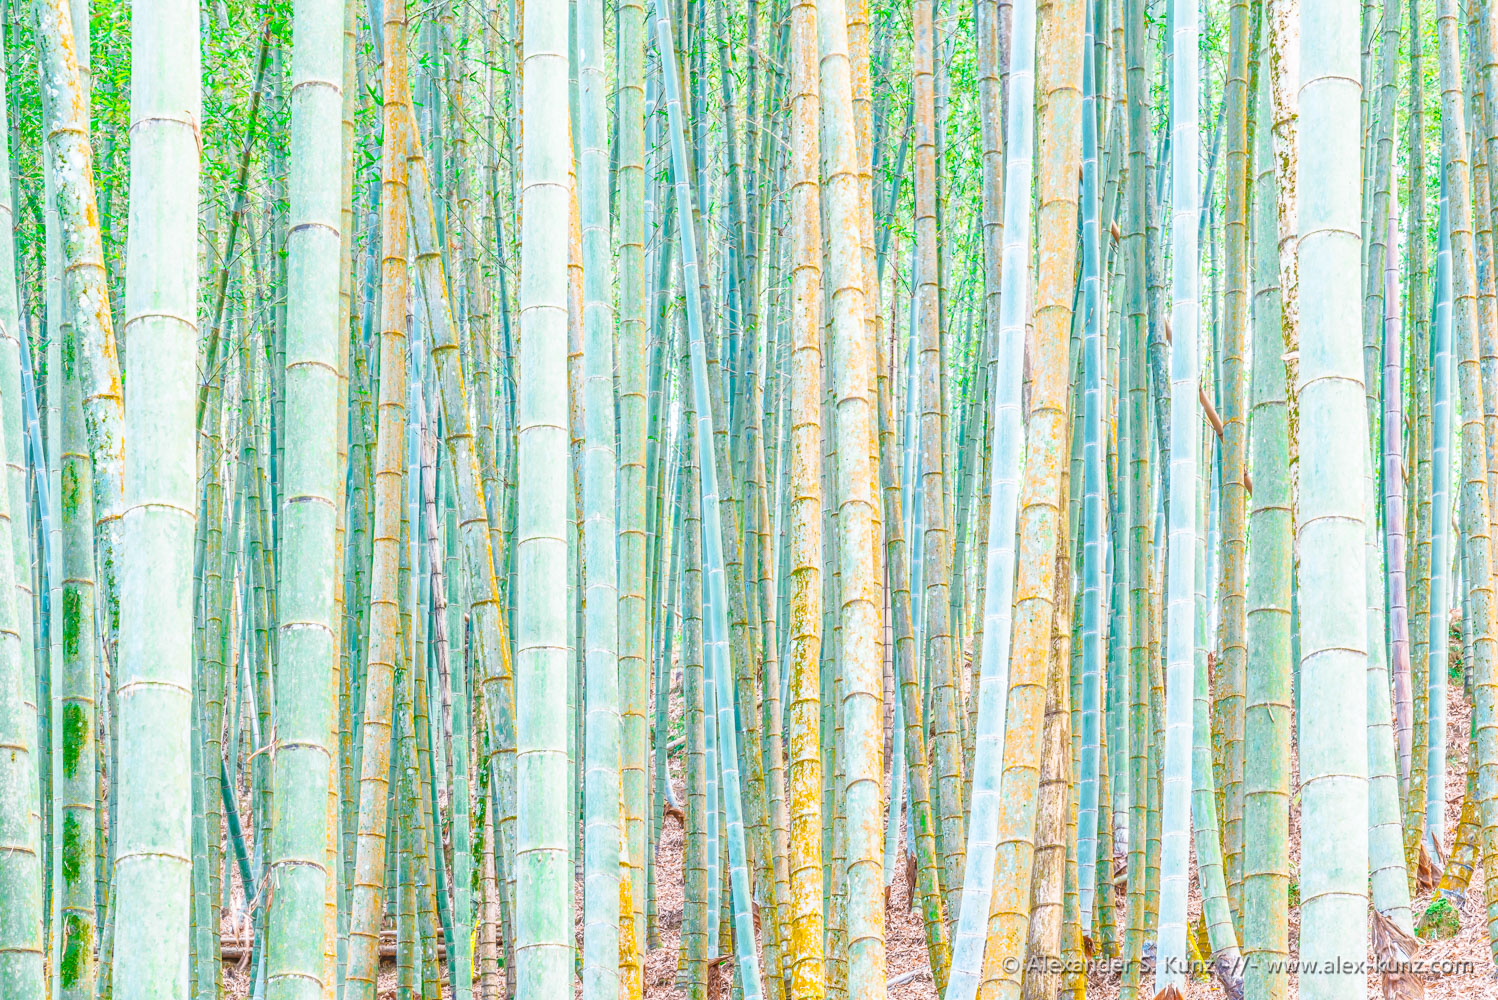 """Natural Obstacle"" - a dense growth of bamboo makes passing through impossible. Photo (C) Alexander S. Kunz"